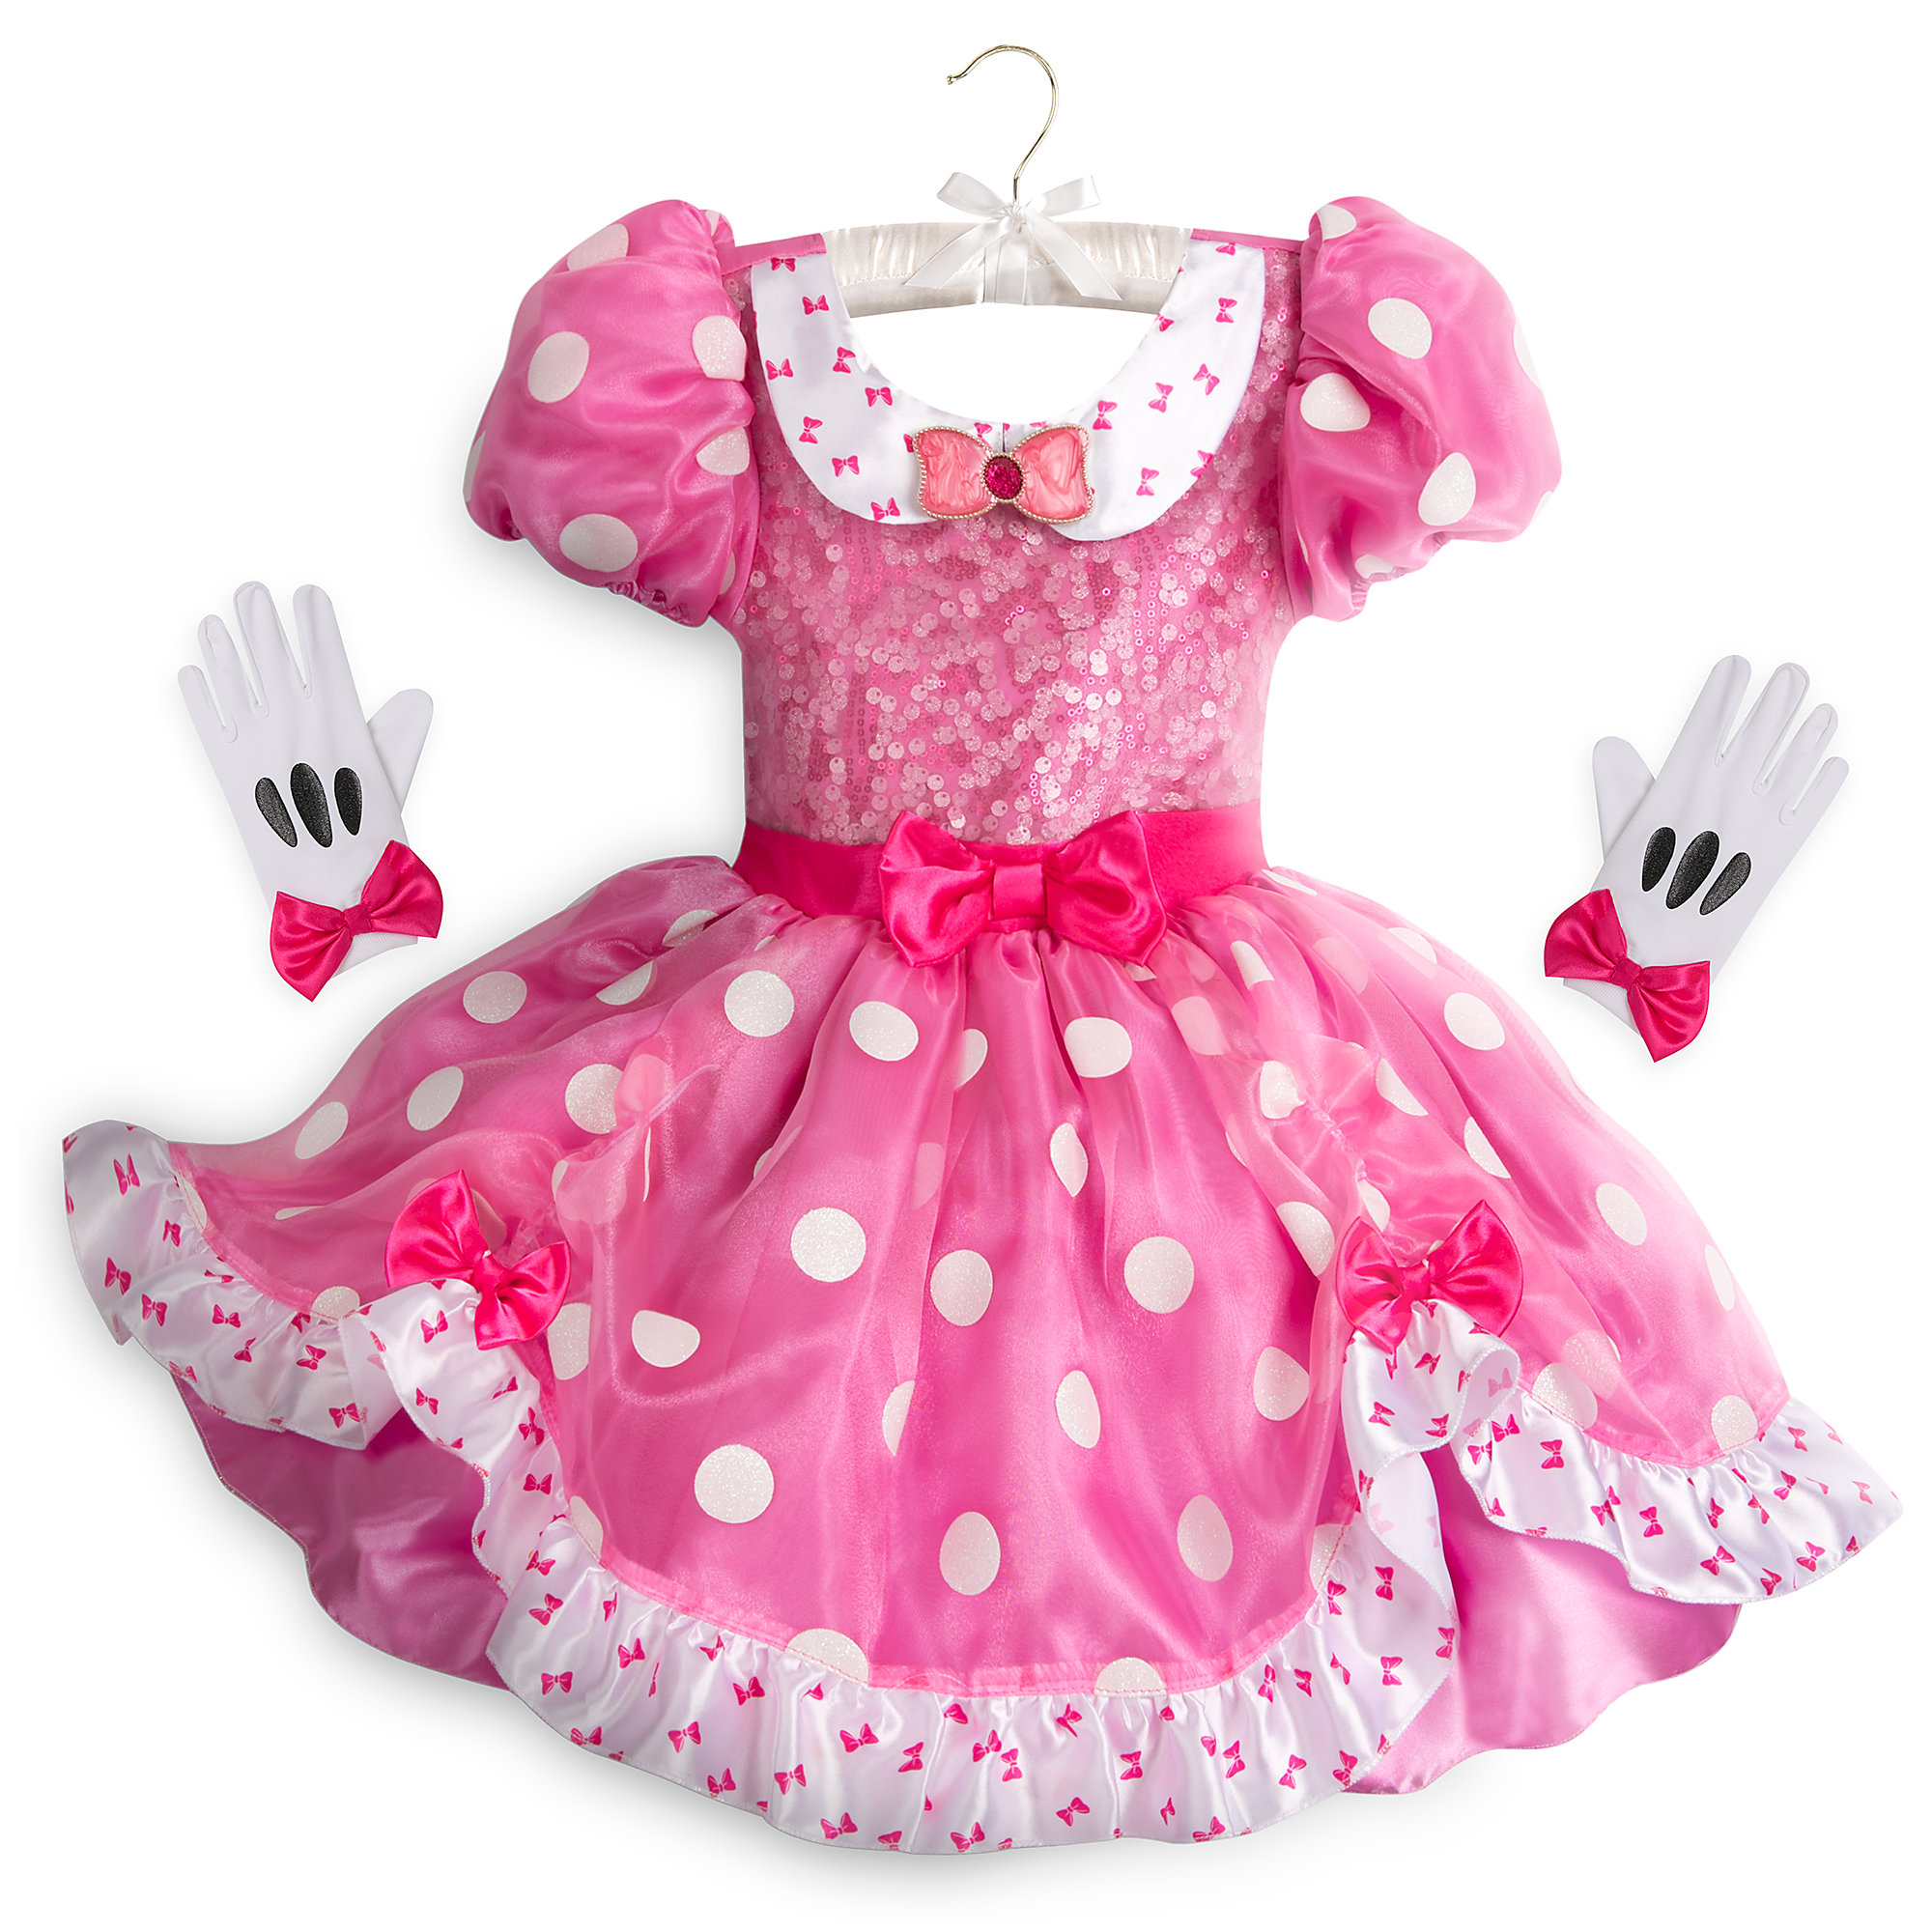 Thumbnail Image of Minnie Mouse Costume for Kids - Pink # 1  sc 1 st  shopDisney & Minnie Mouse Costume for Kids - Pink   shopDisney